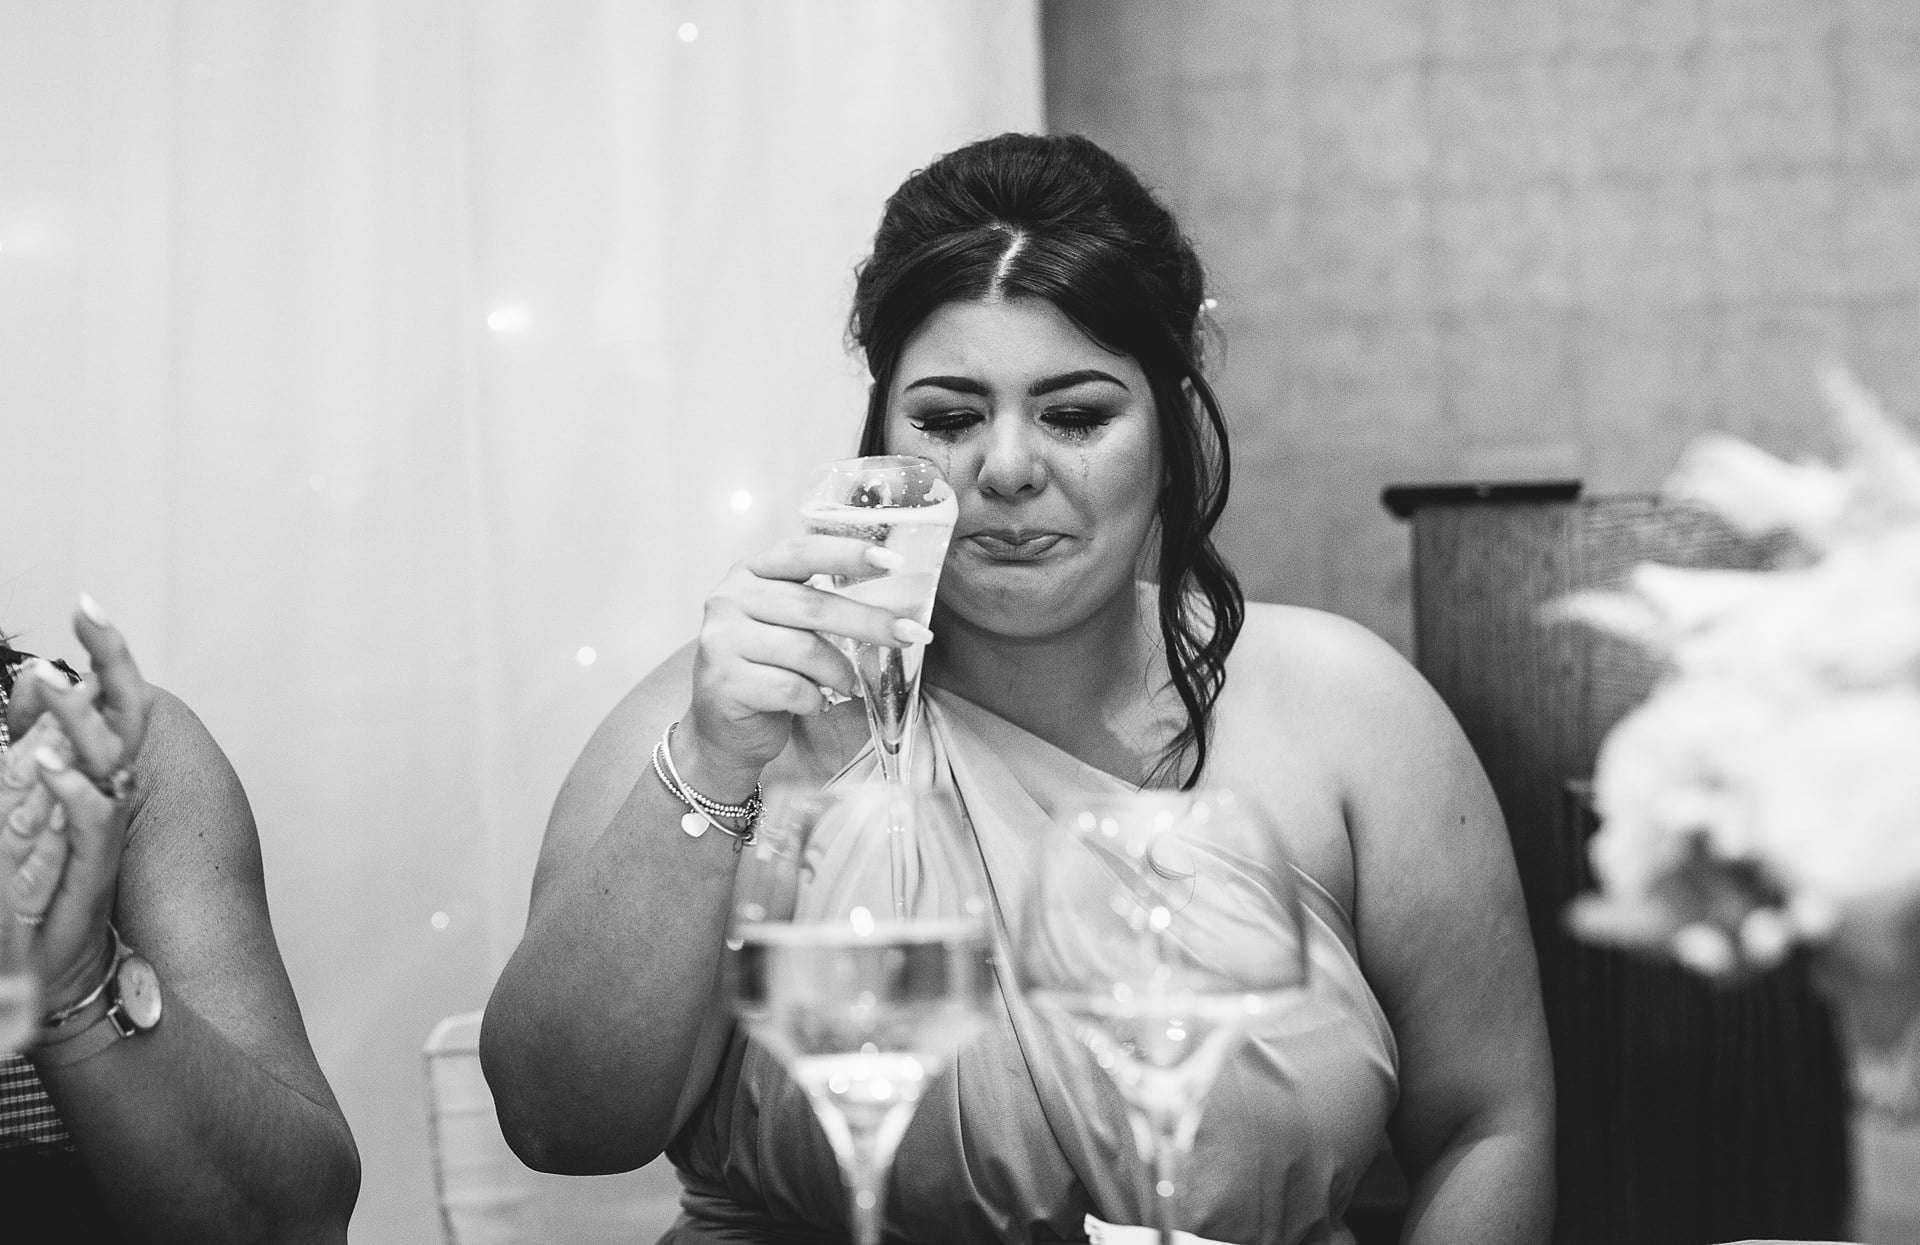 An emotional bridesmaid captured by Shropshire Documentary Wedding Photographer